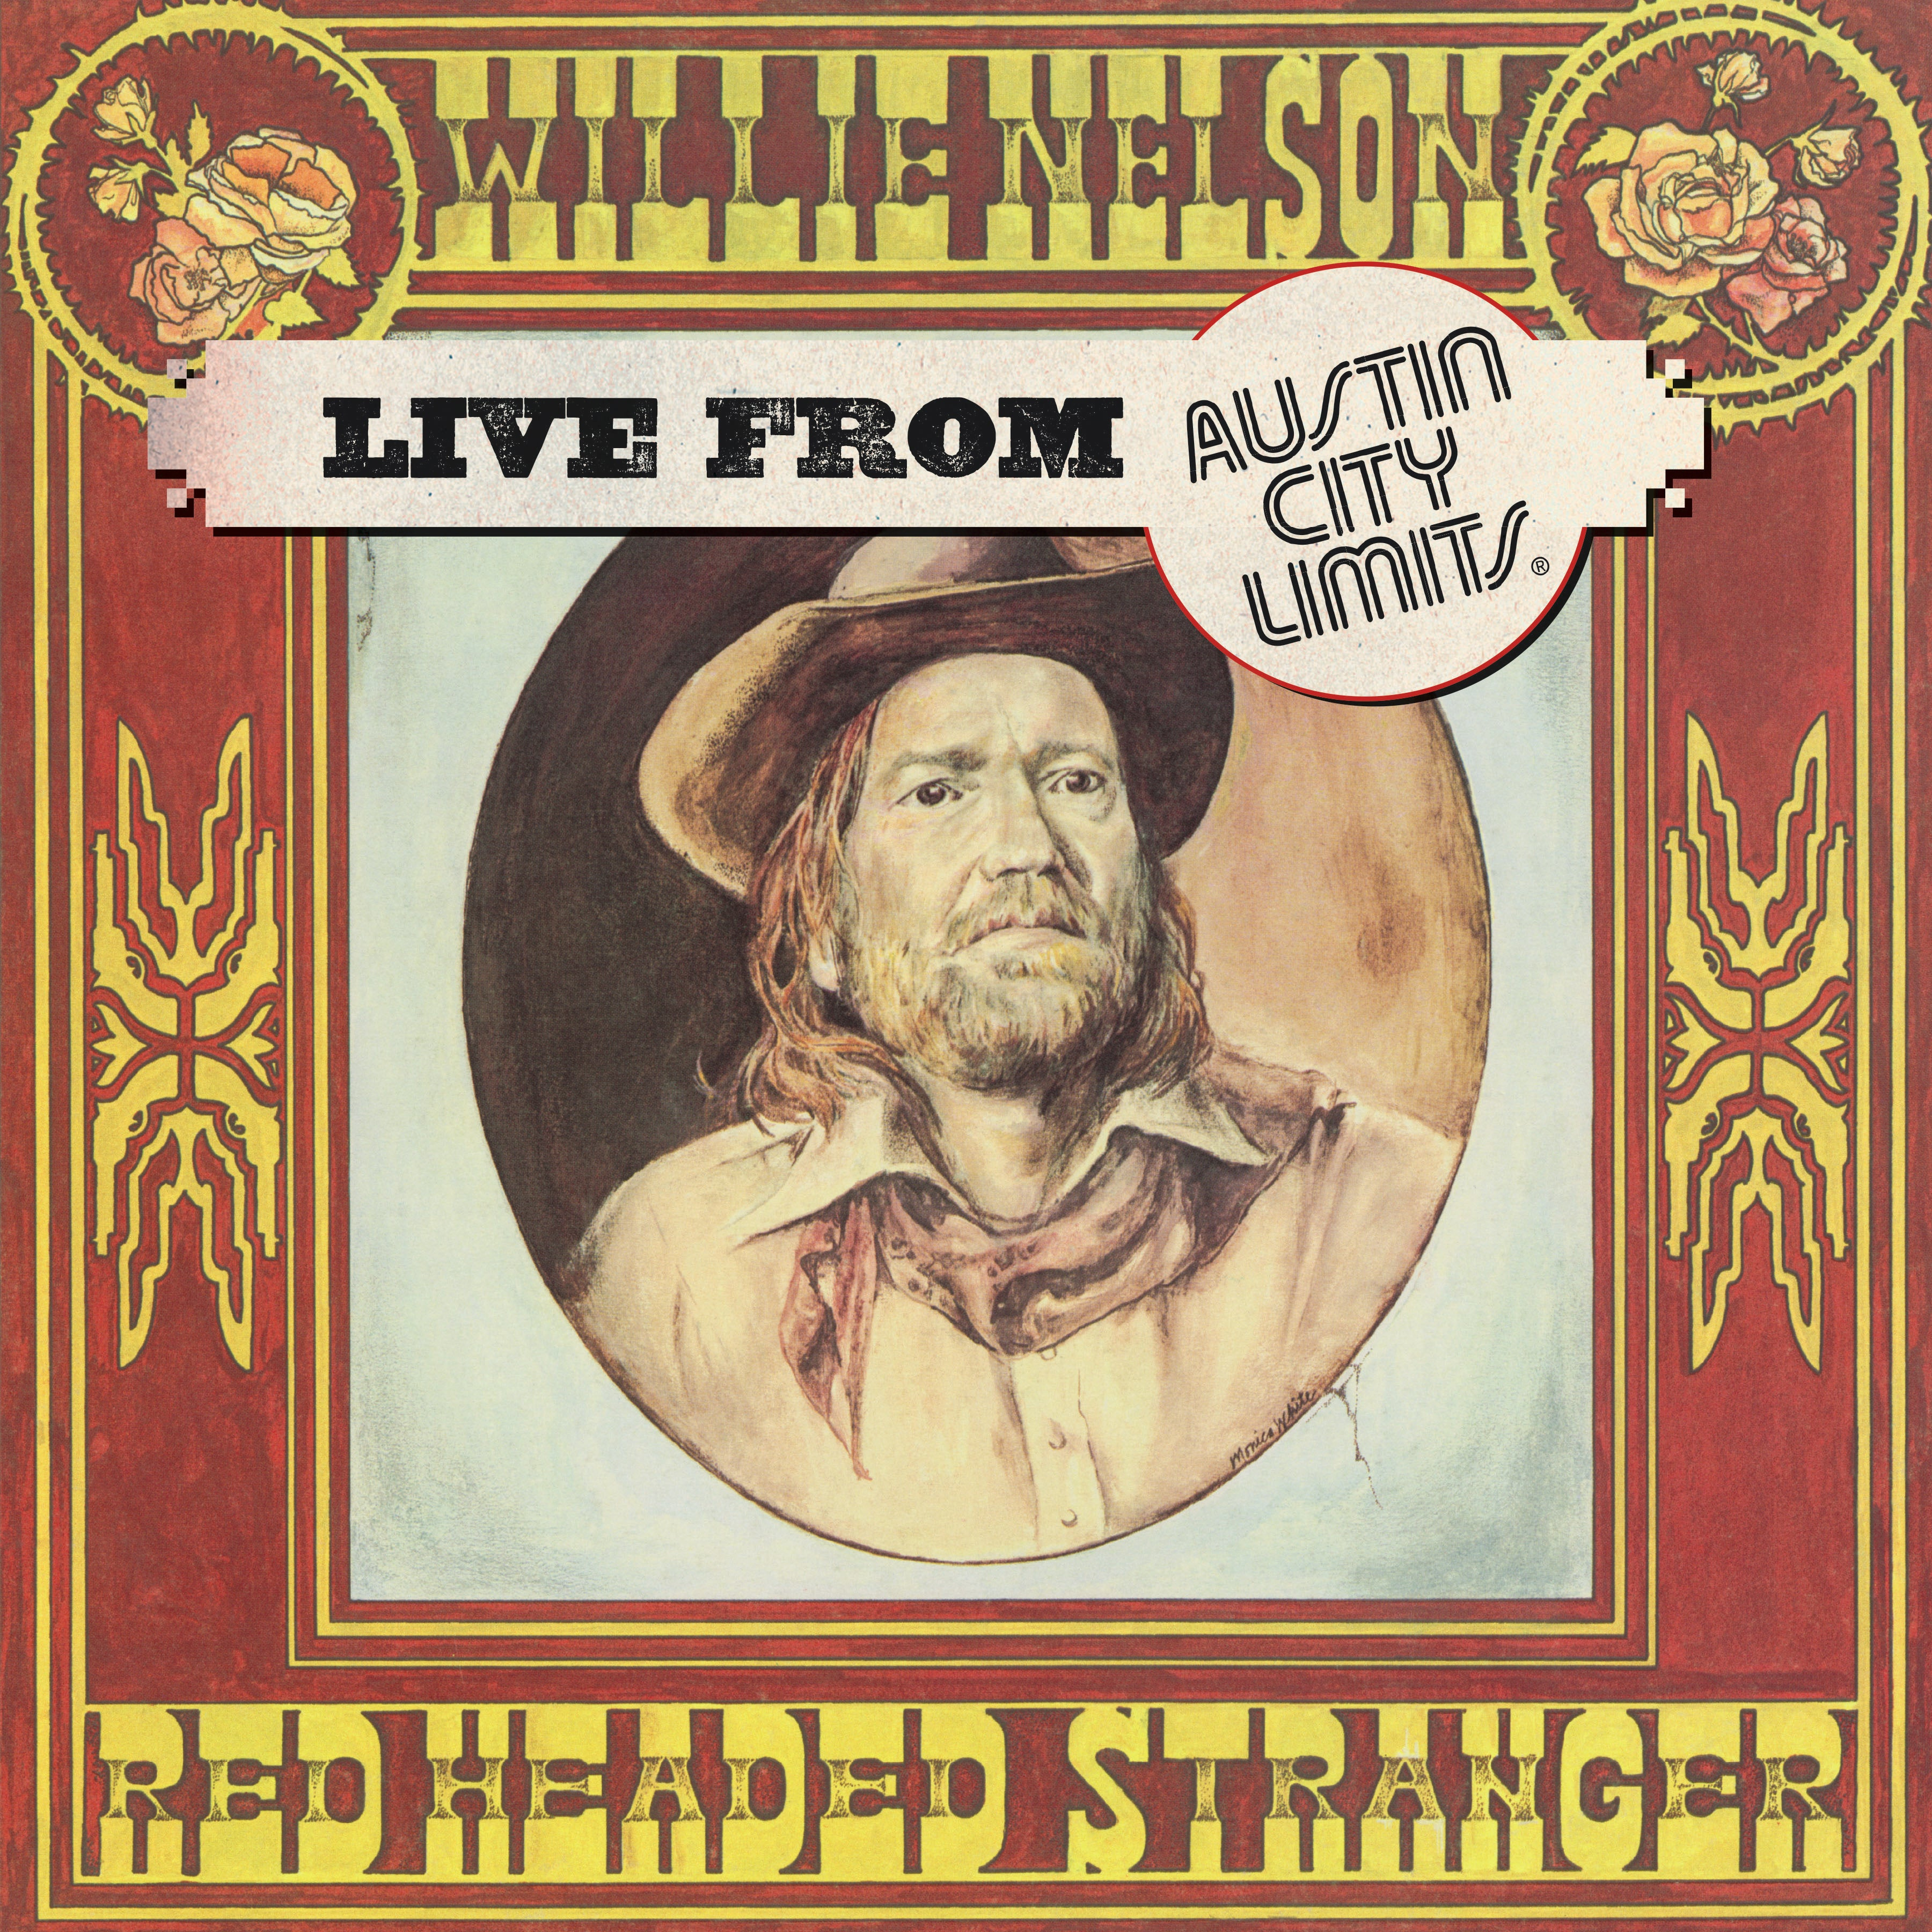 Willie Nelson - Live At Austin City Limits 1976 (RSD 2020 Black Friday) Vinyl Record Album